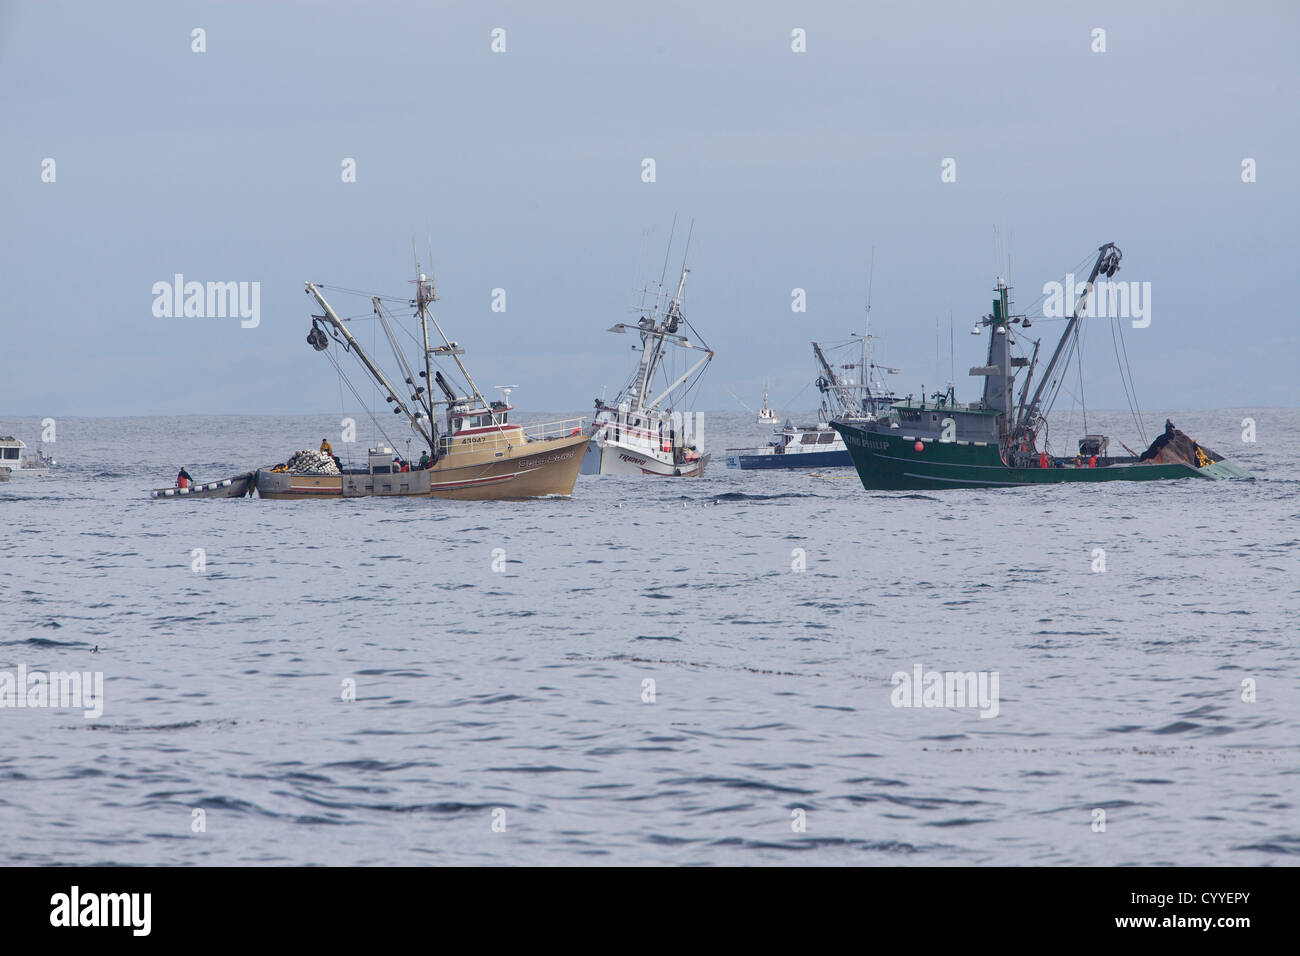 Fishermen pull in their catch on Monterey Bay, California. - Stock Image